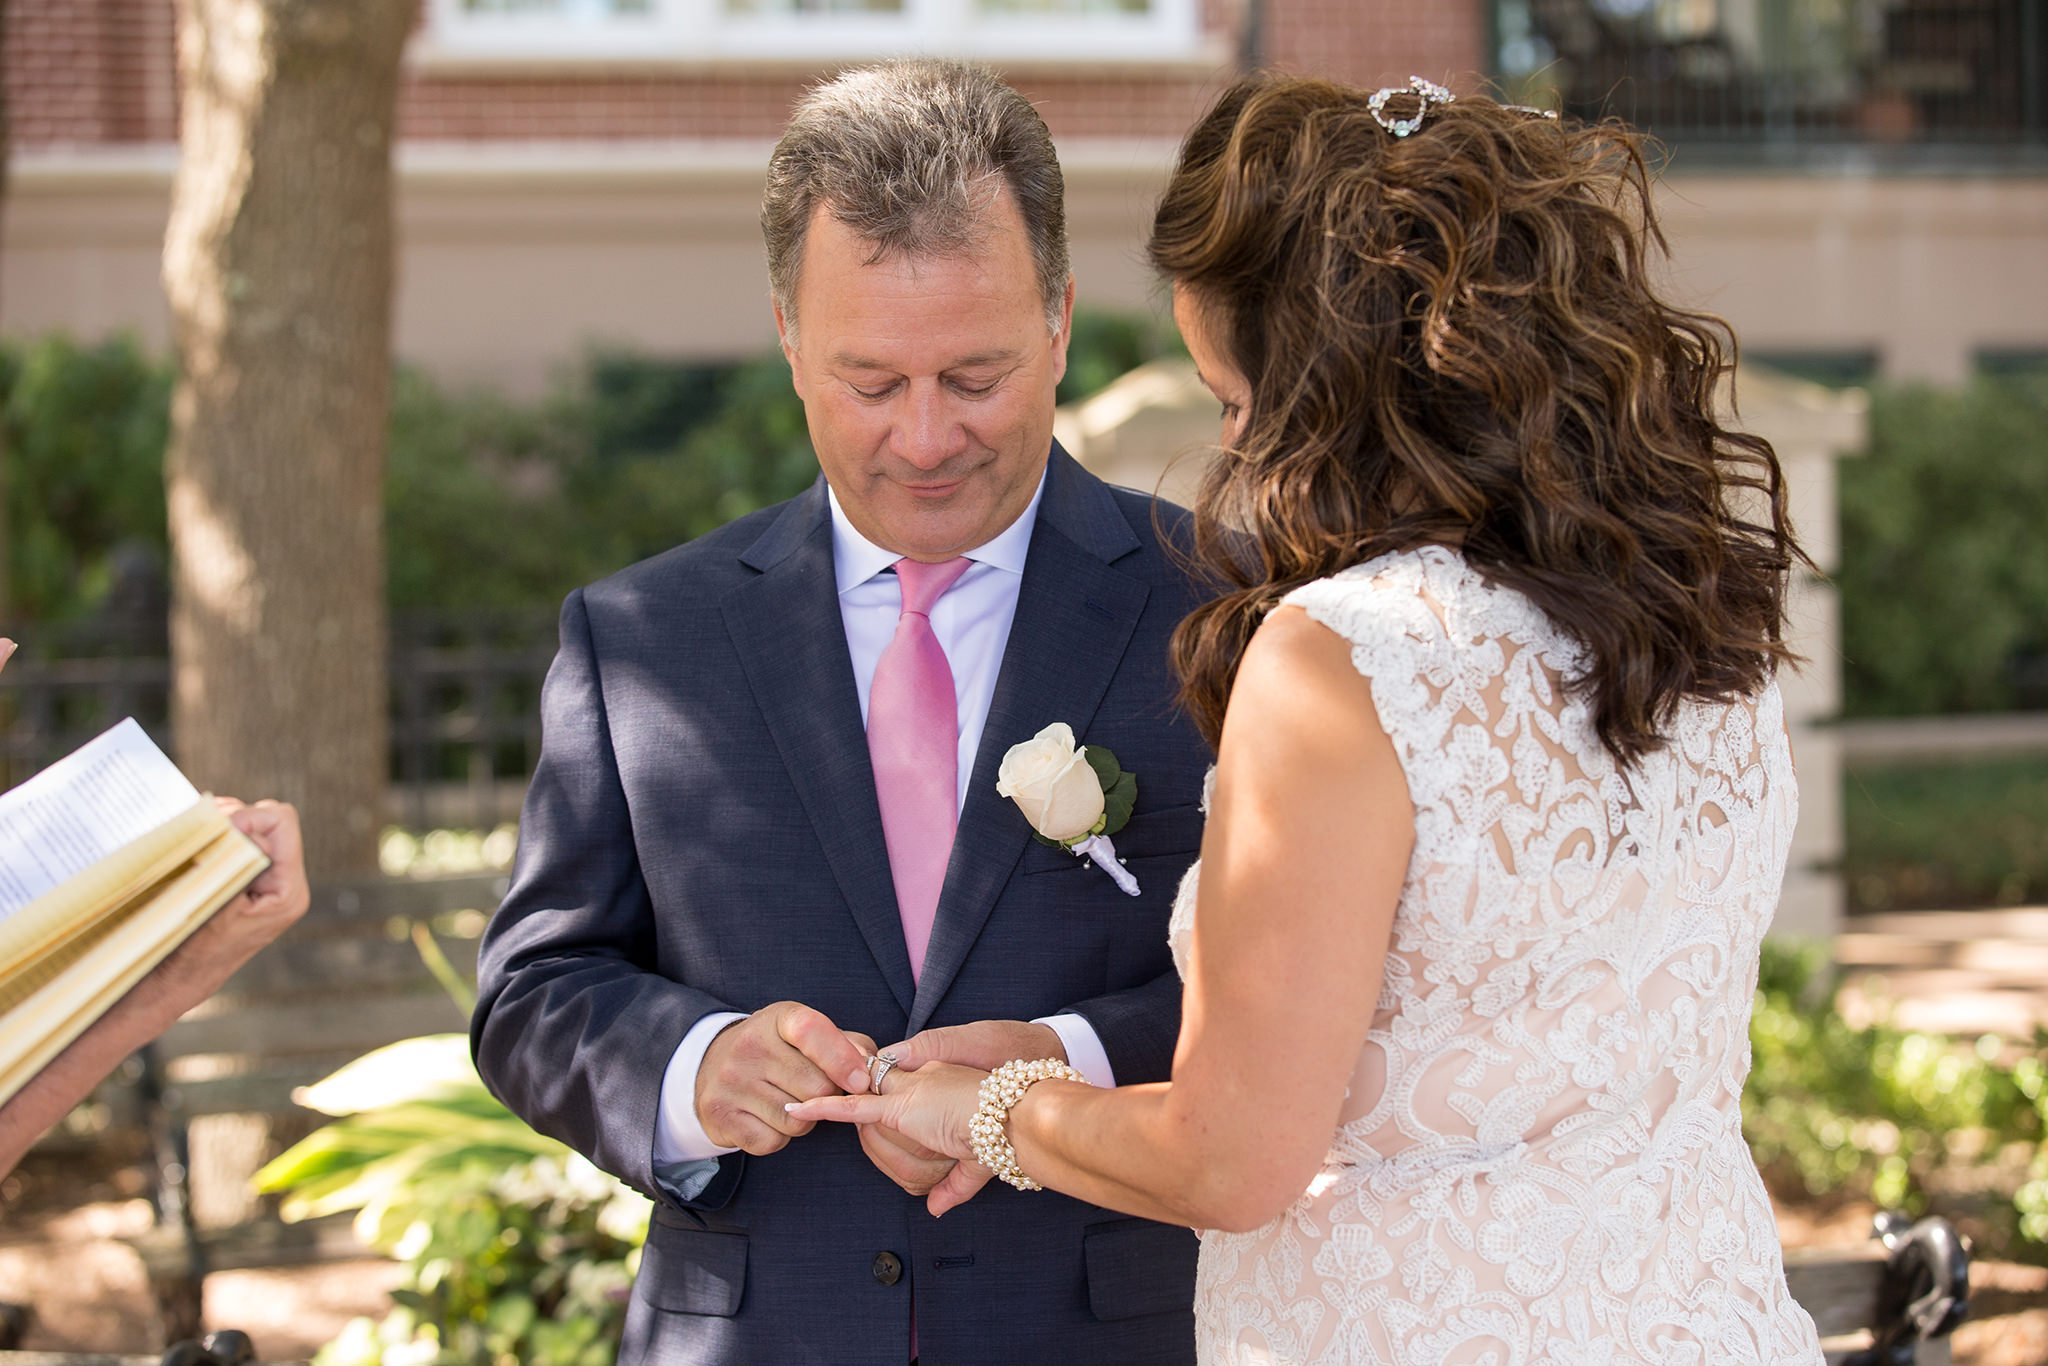 The groom is putting the ring on the bride's finger